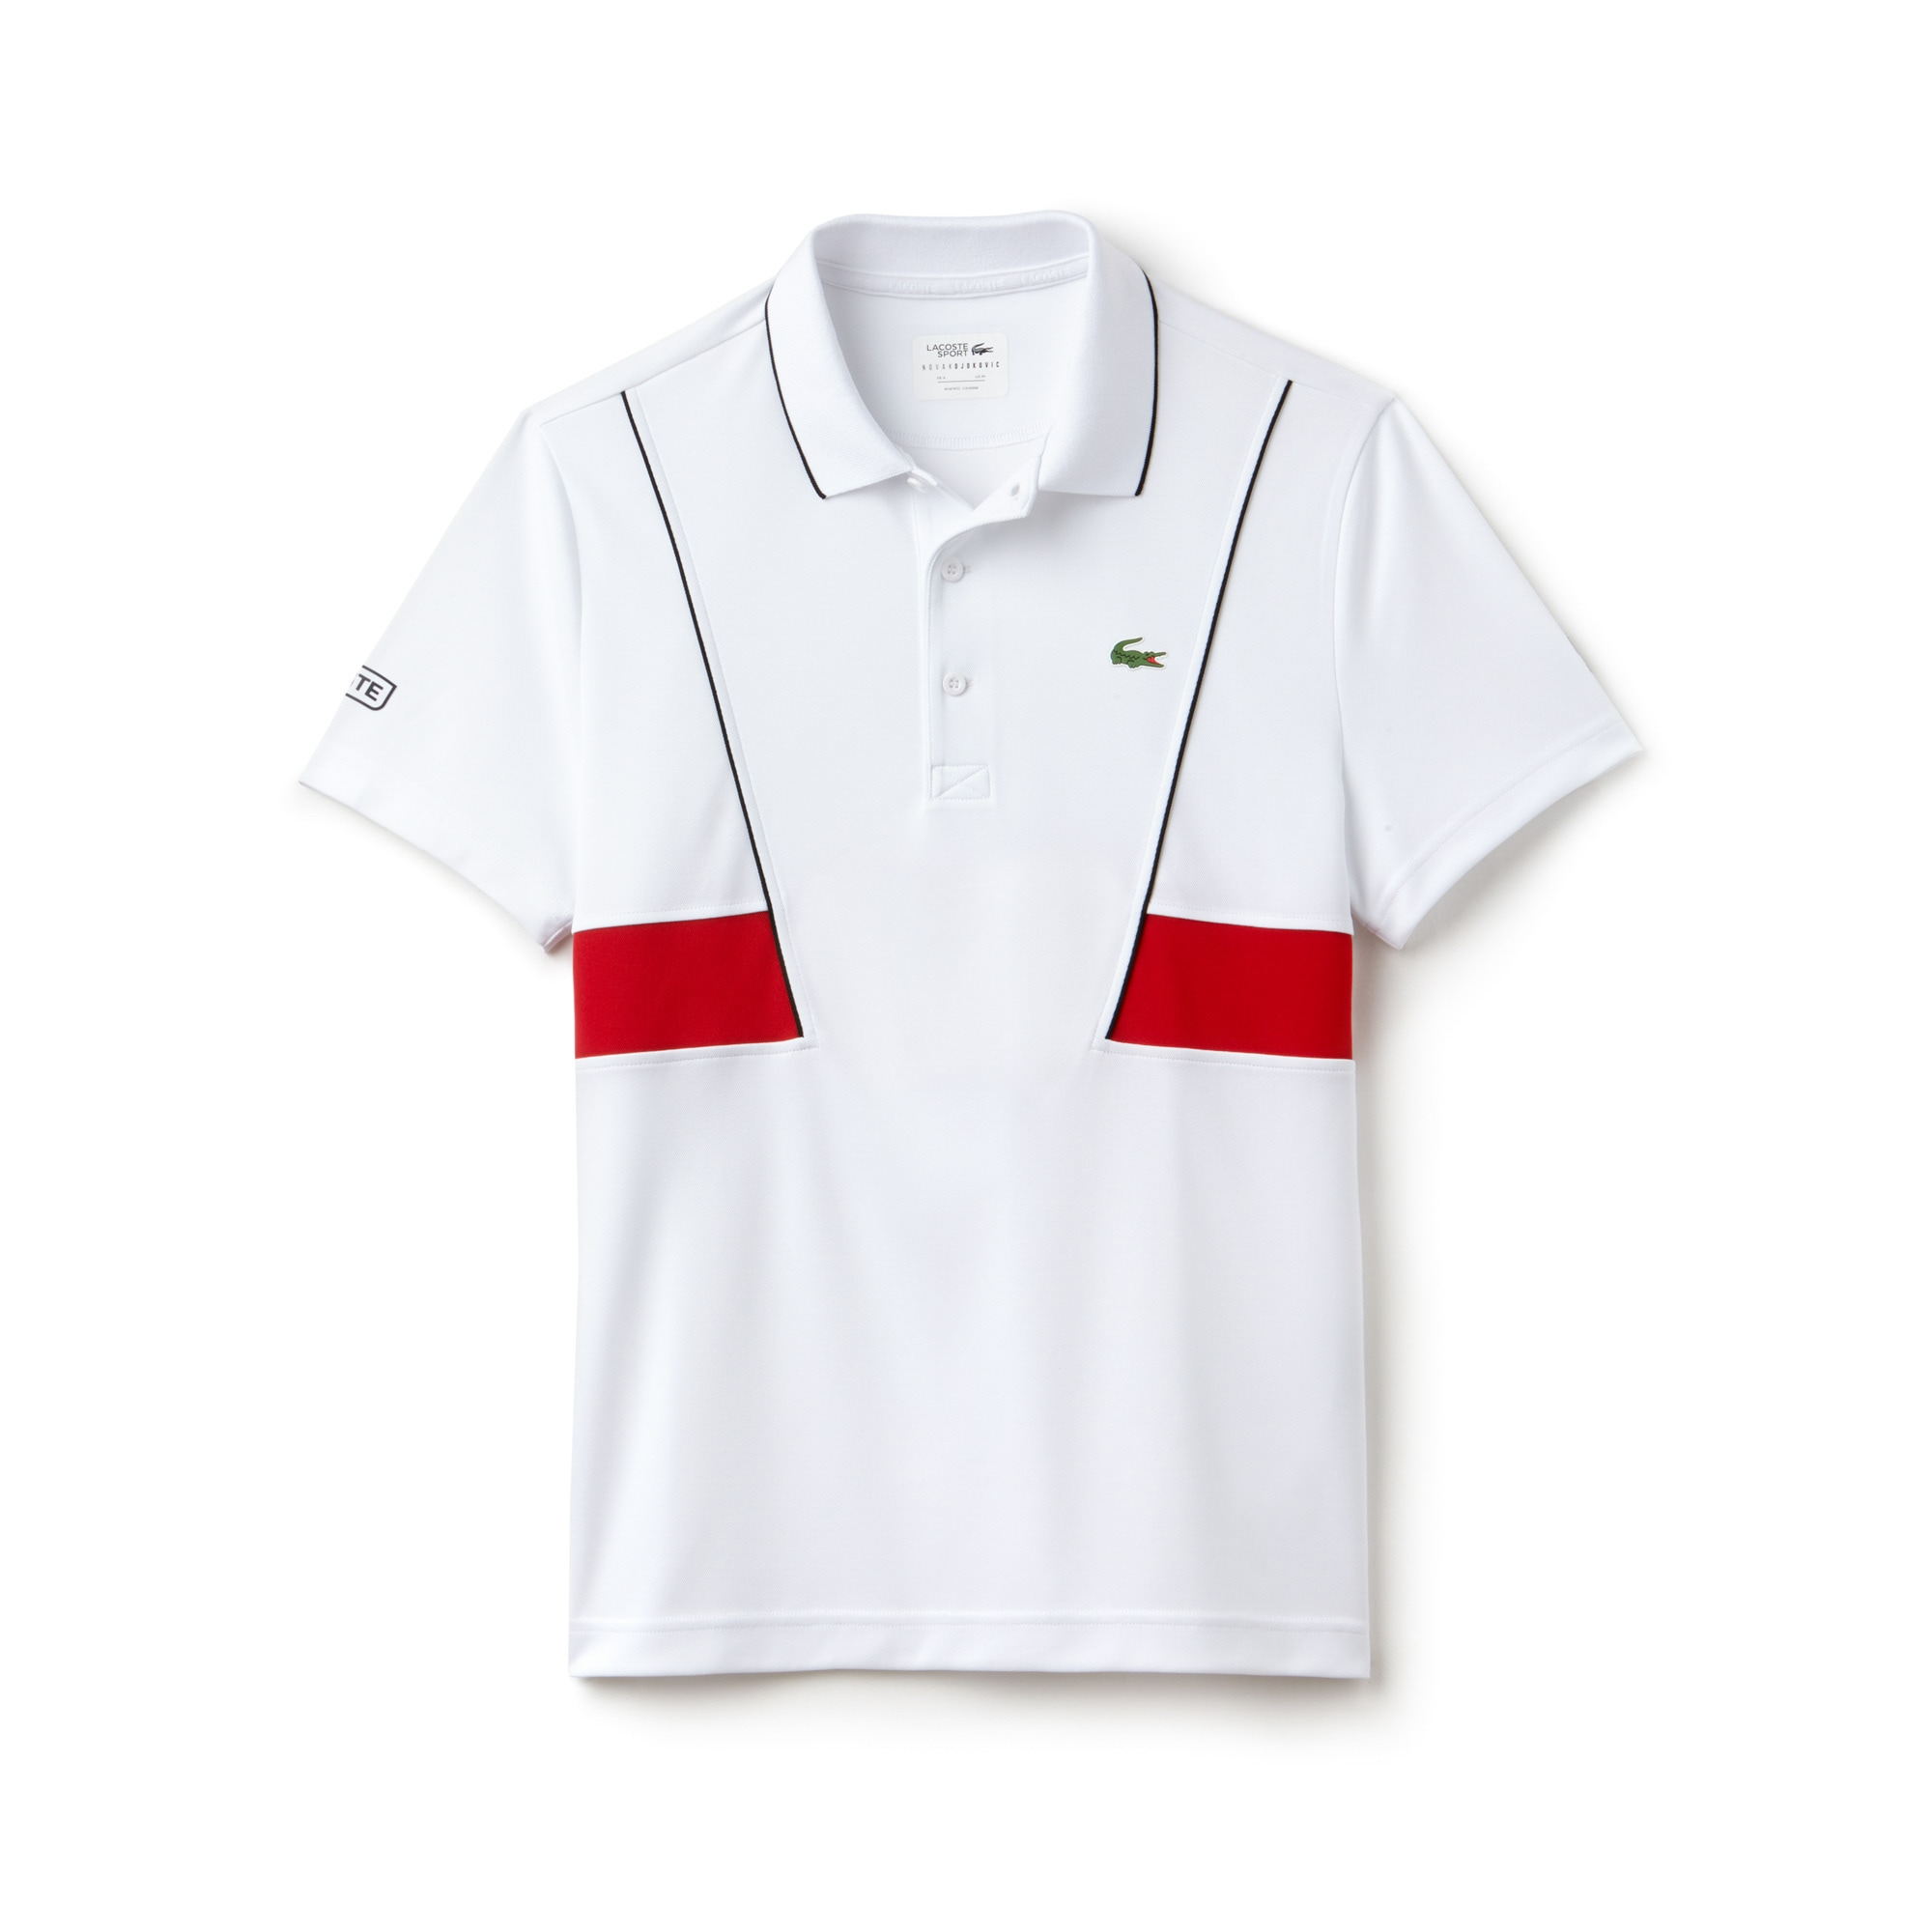 Men's LACOSTE SPORT NOVAK DJOKOVIC COLLECTION Tech Piqué Polo...